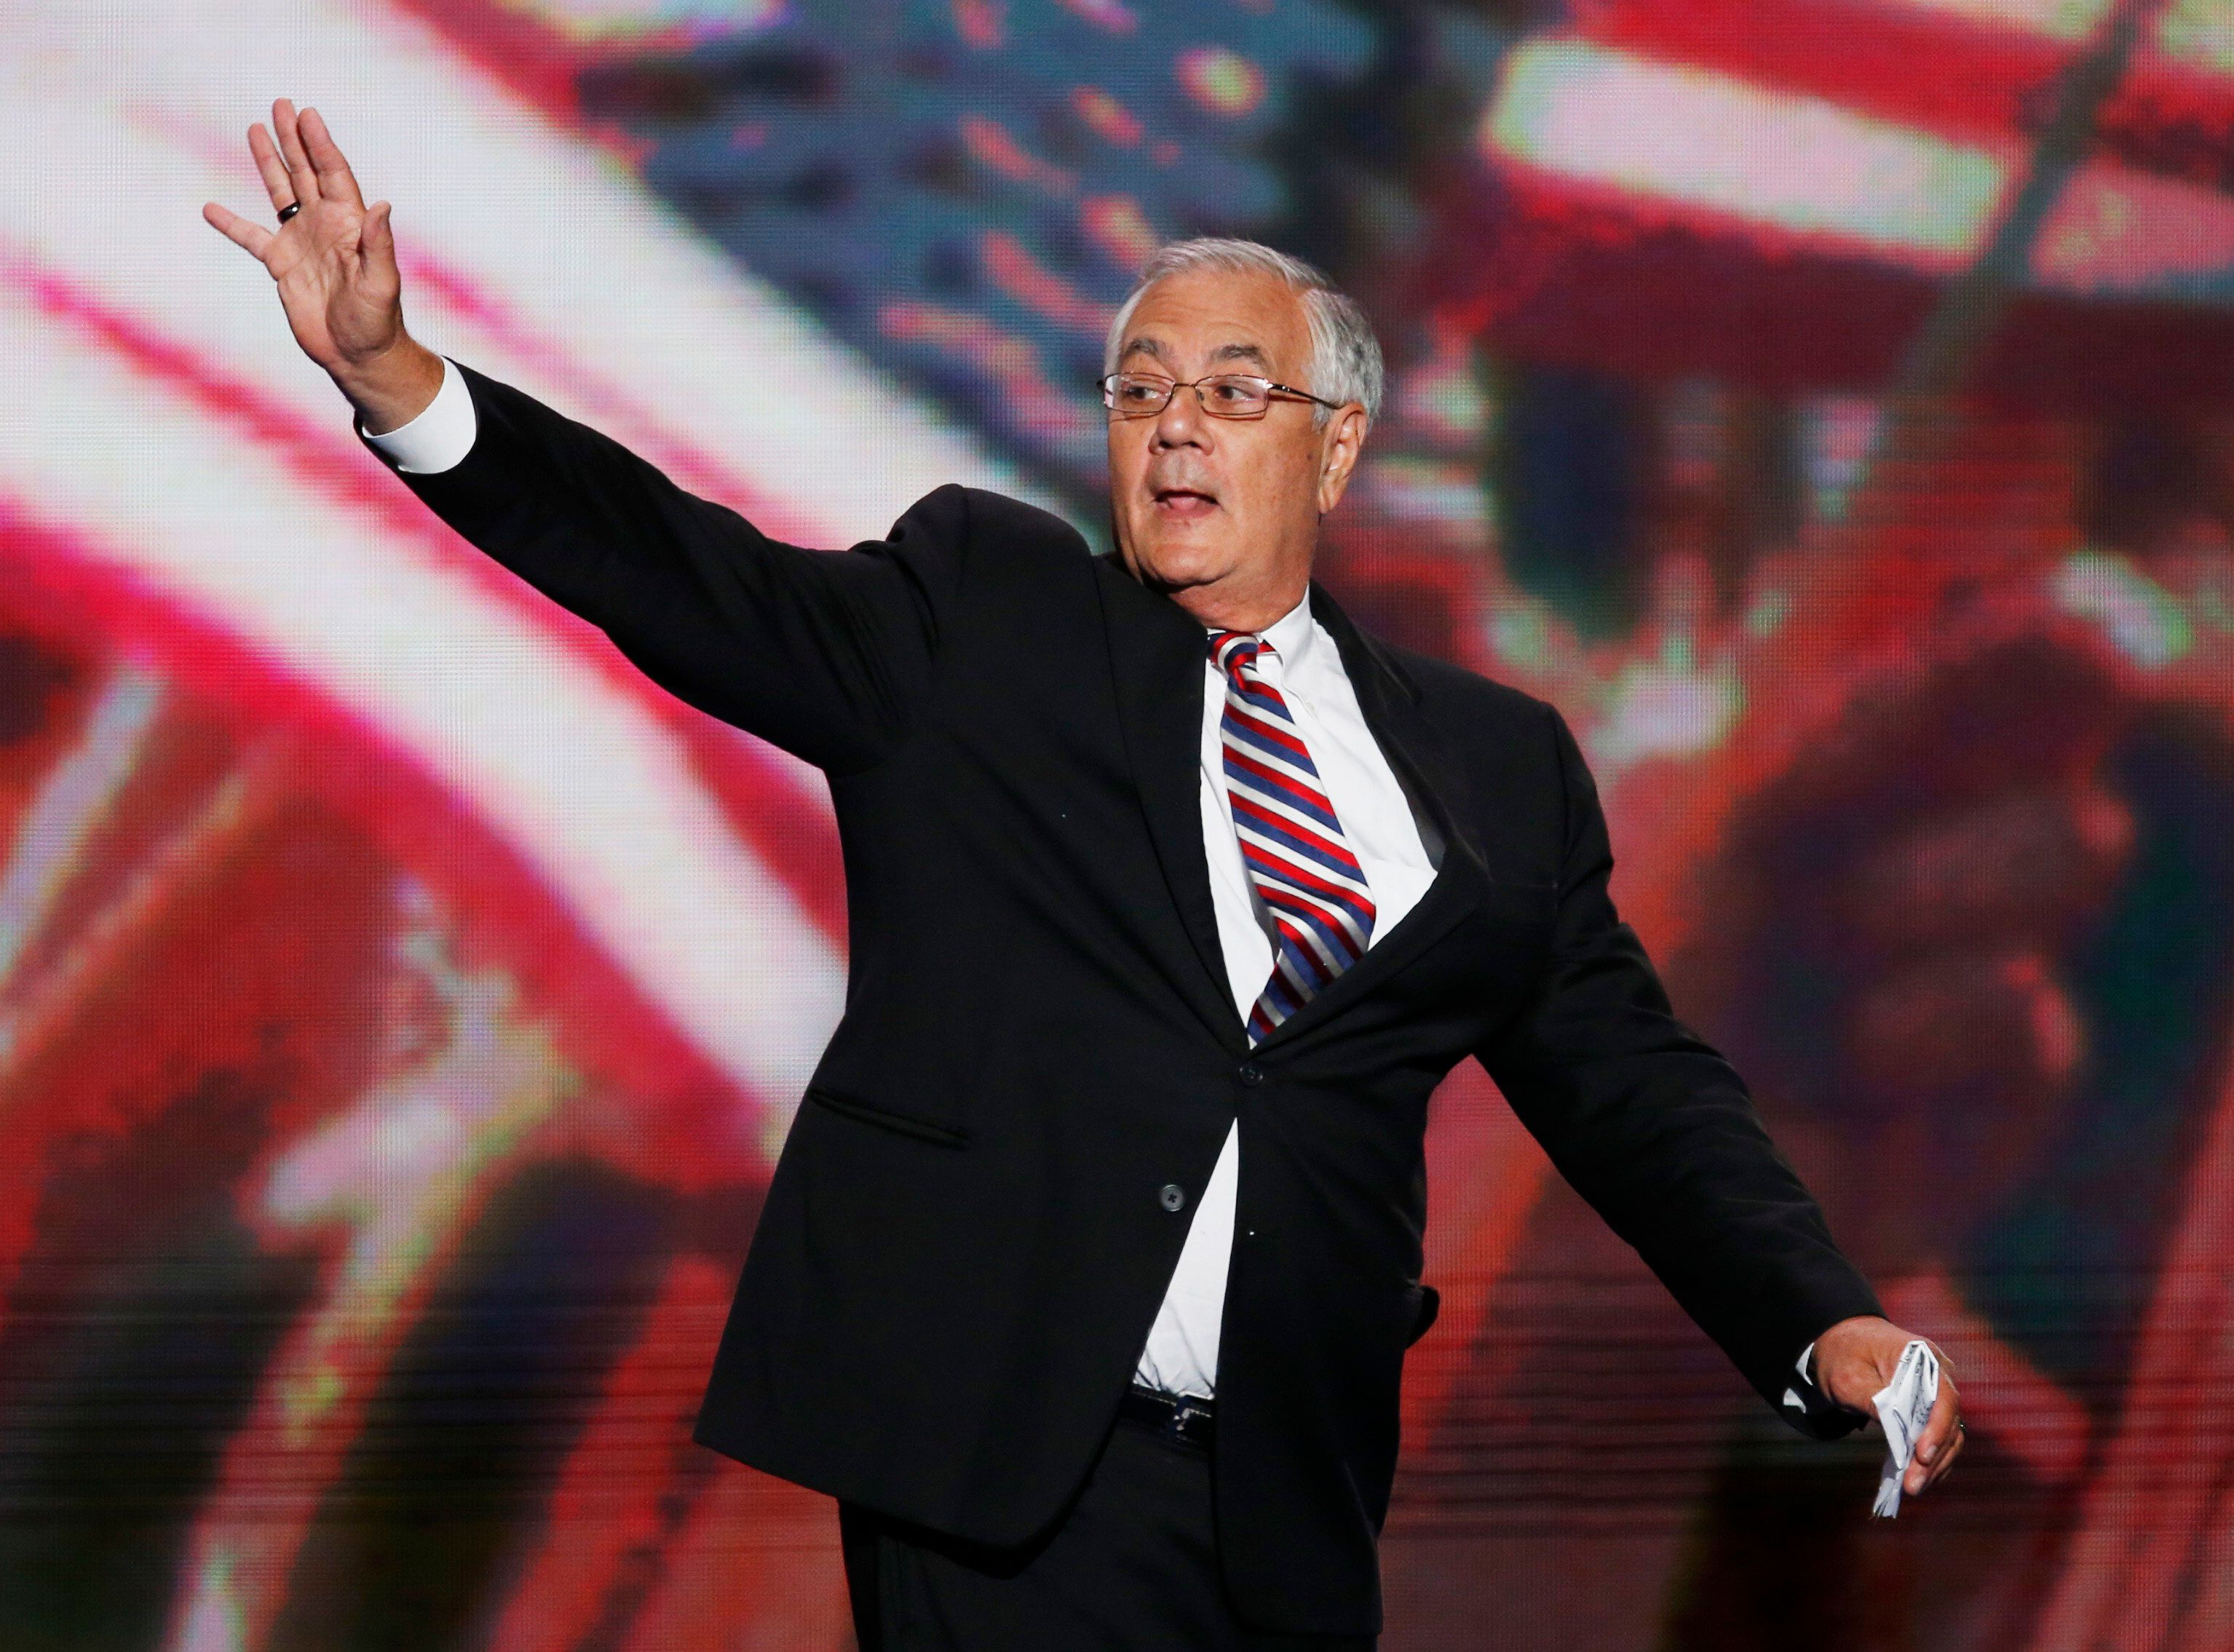 Rep. Barney Frank (D-MA) waves during the final session of the Democratic National Convention in Charlotte, North Carolina September 6, 2012.      REUTERS/Jason Reed (UNITED STATES  - Tags: POLITICS ELECTIONS)